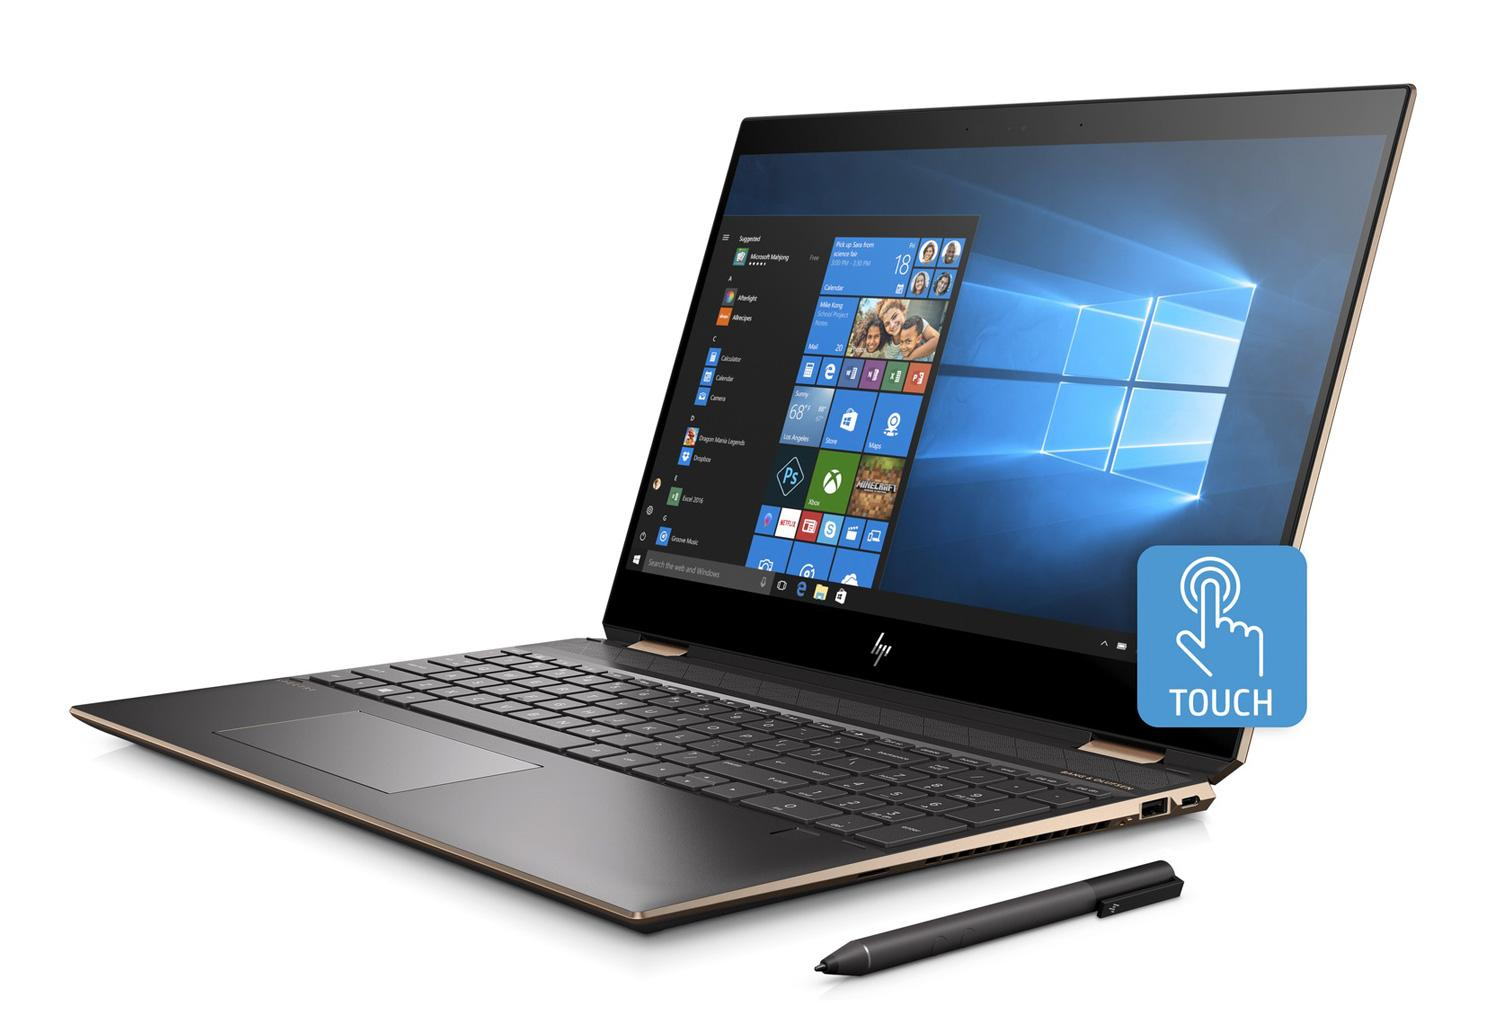 Ordinateur portable HP Spectre x360 15-df0007nf Cendre 4K Tactile - Hexa Core, GTX 1050 Ti - photo 5